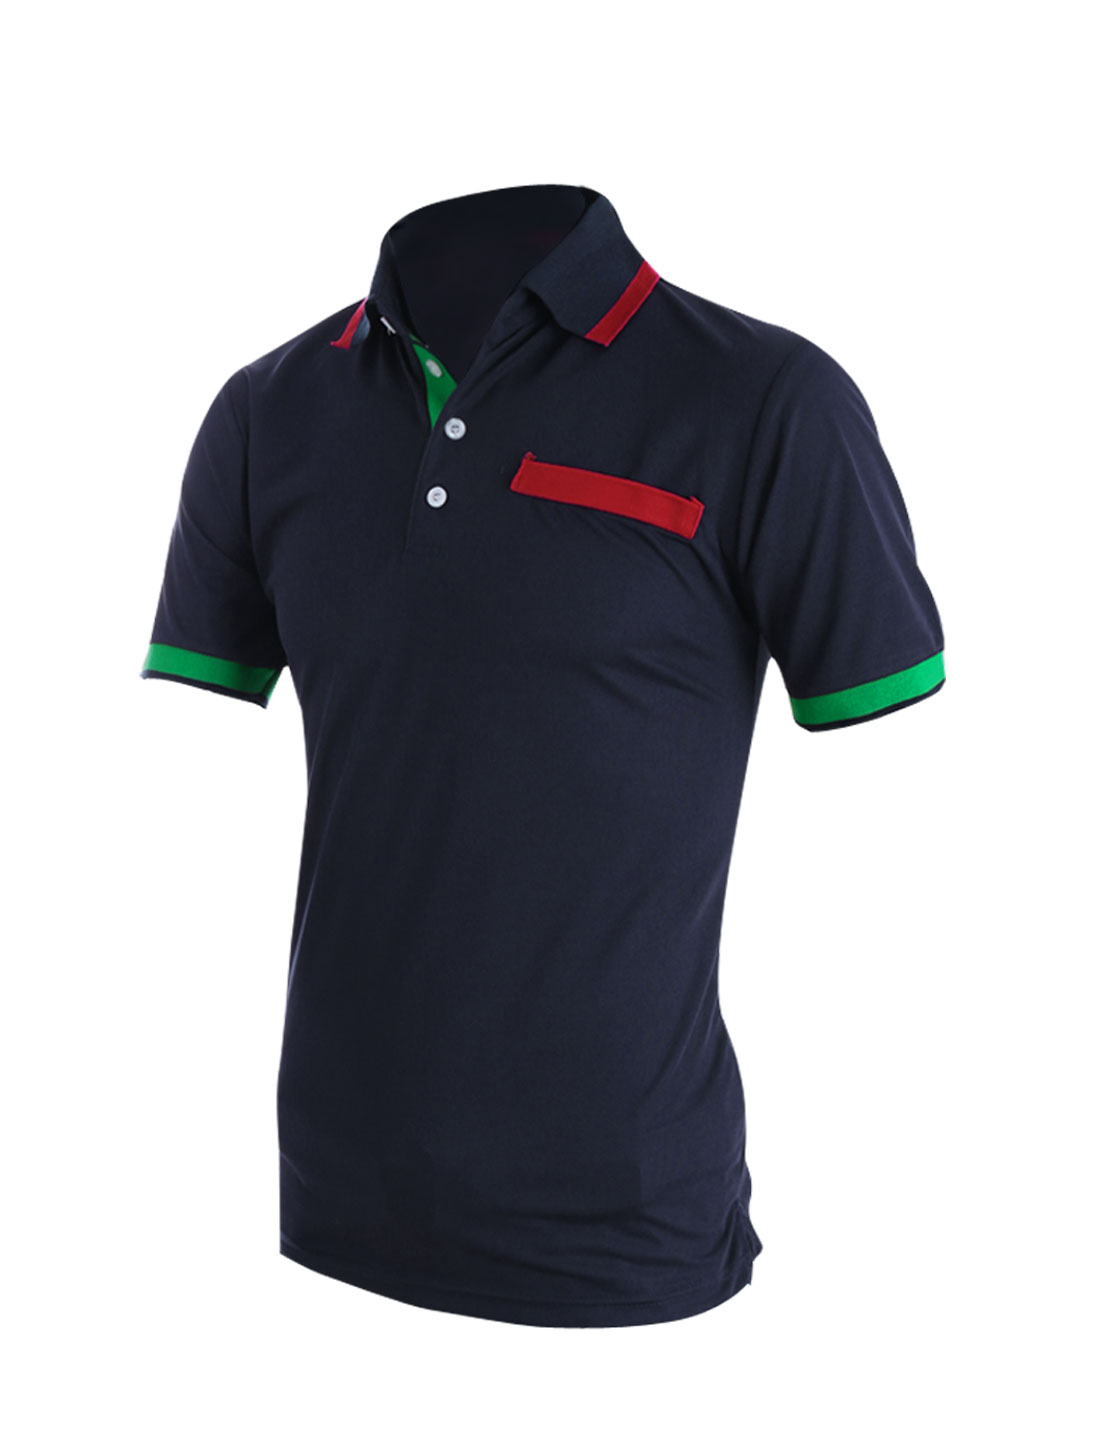 Men Convertible Collar Short Sleeve Casual Polo Shirt Navy Blue M